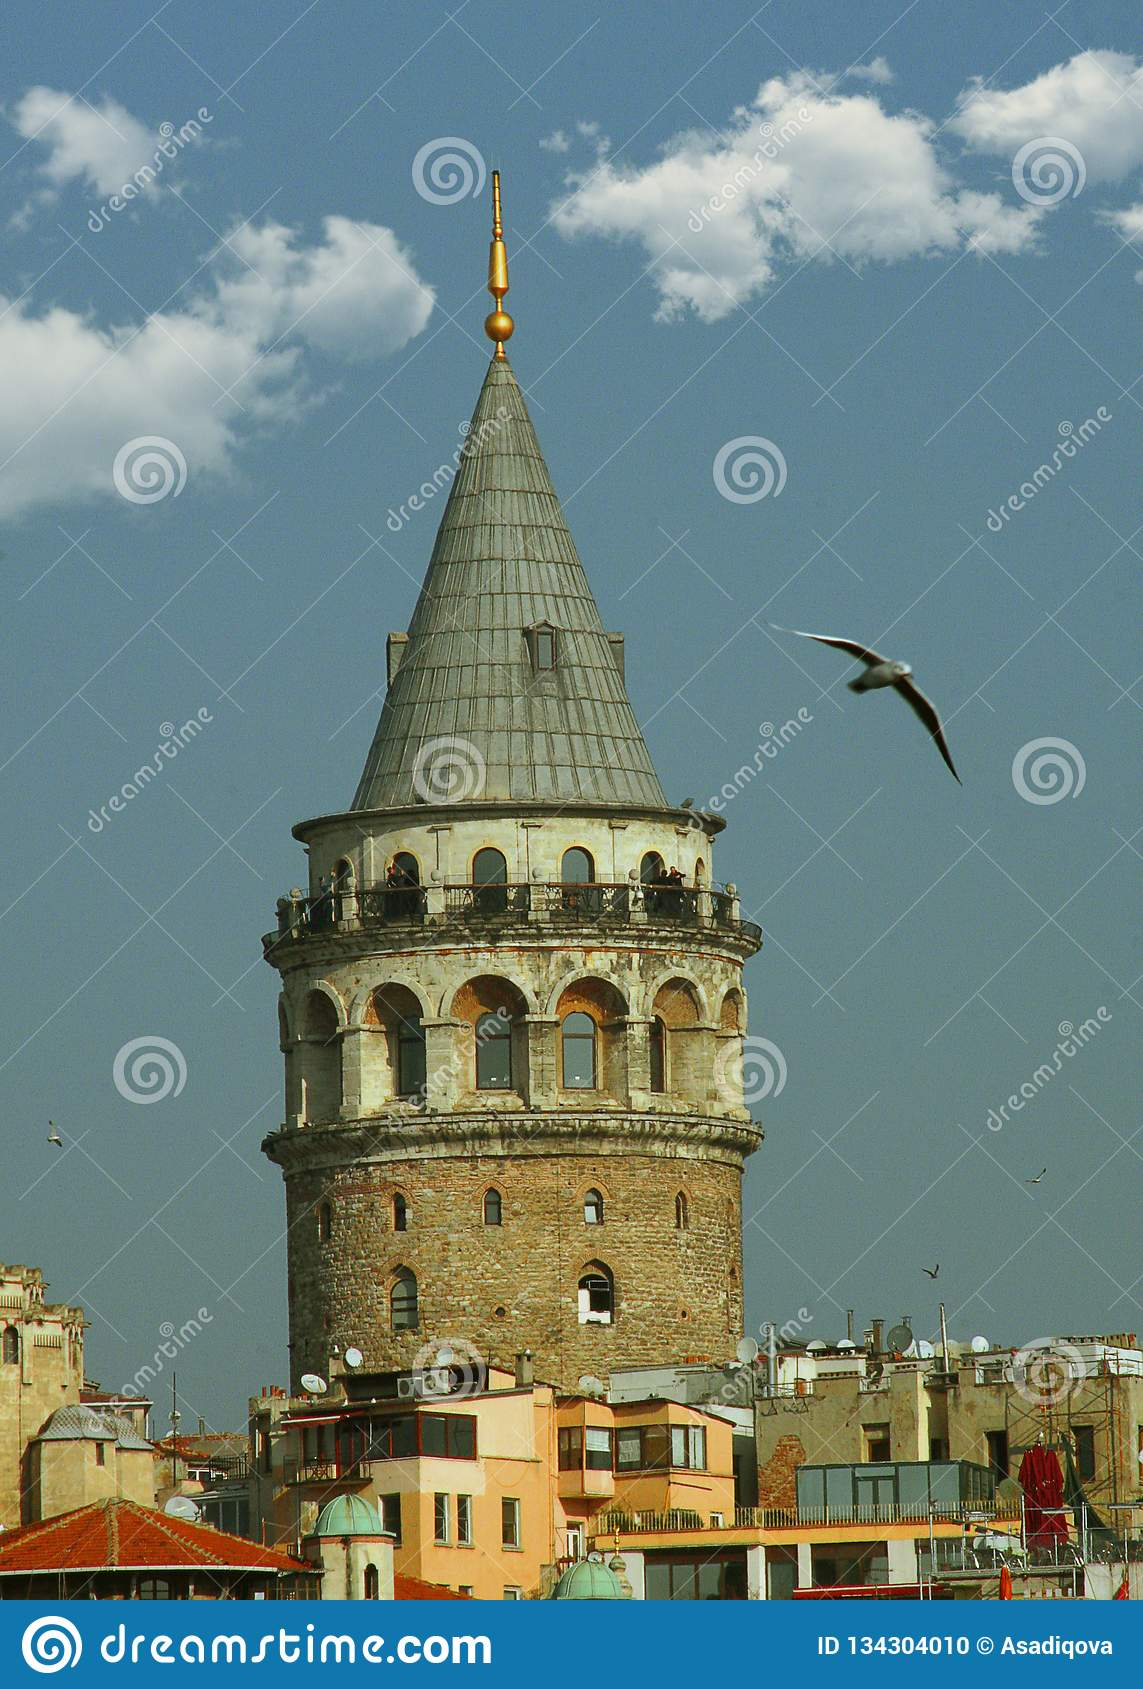 Istanbul city skyline in Turkey, Beyoglu district old houses with Galata tower on top, view from the Golden Horn. - Image